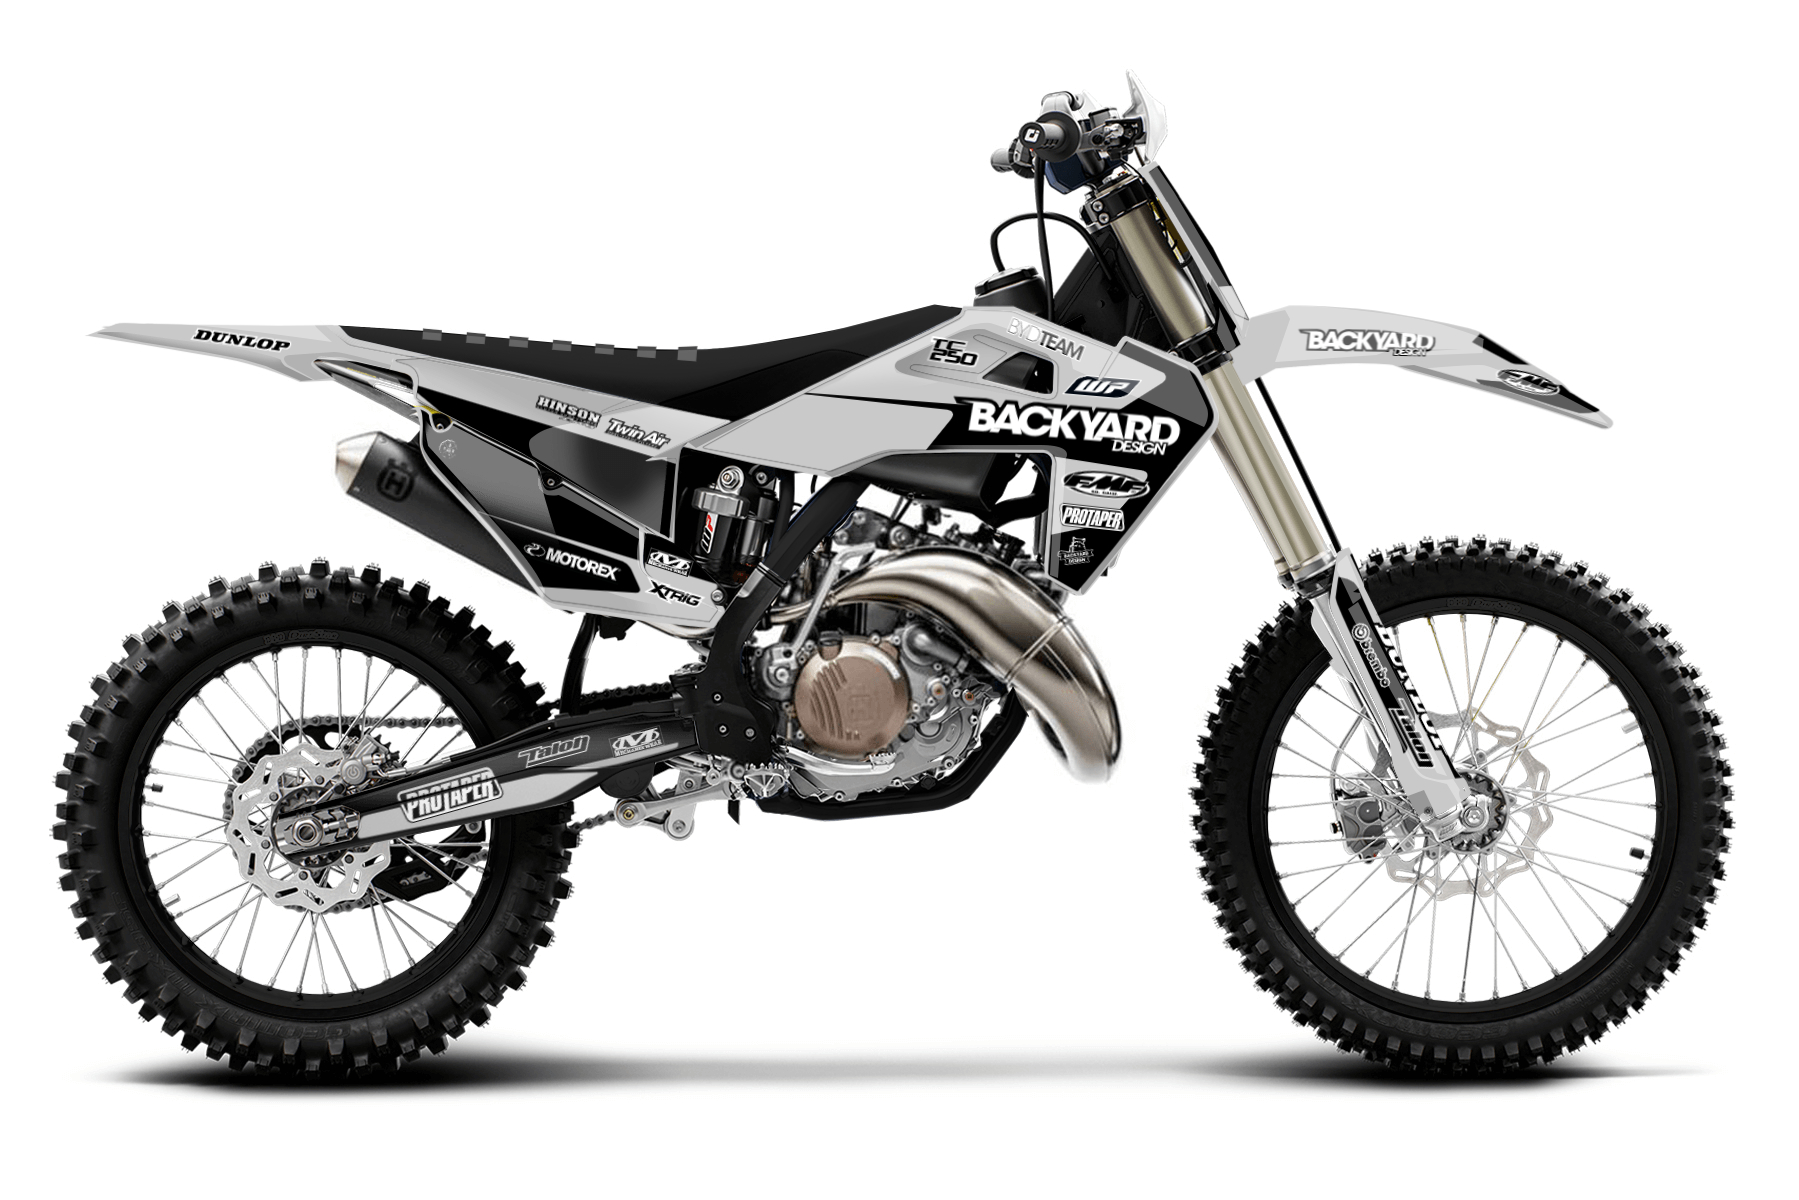 Husqvarna TC250 MX Graphic Kits  The Husqvarna TC250 is the bike to beat in the two-stroke sector. Superior technical assets and a sturdy build are the main arguments for this bike.